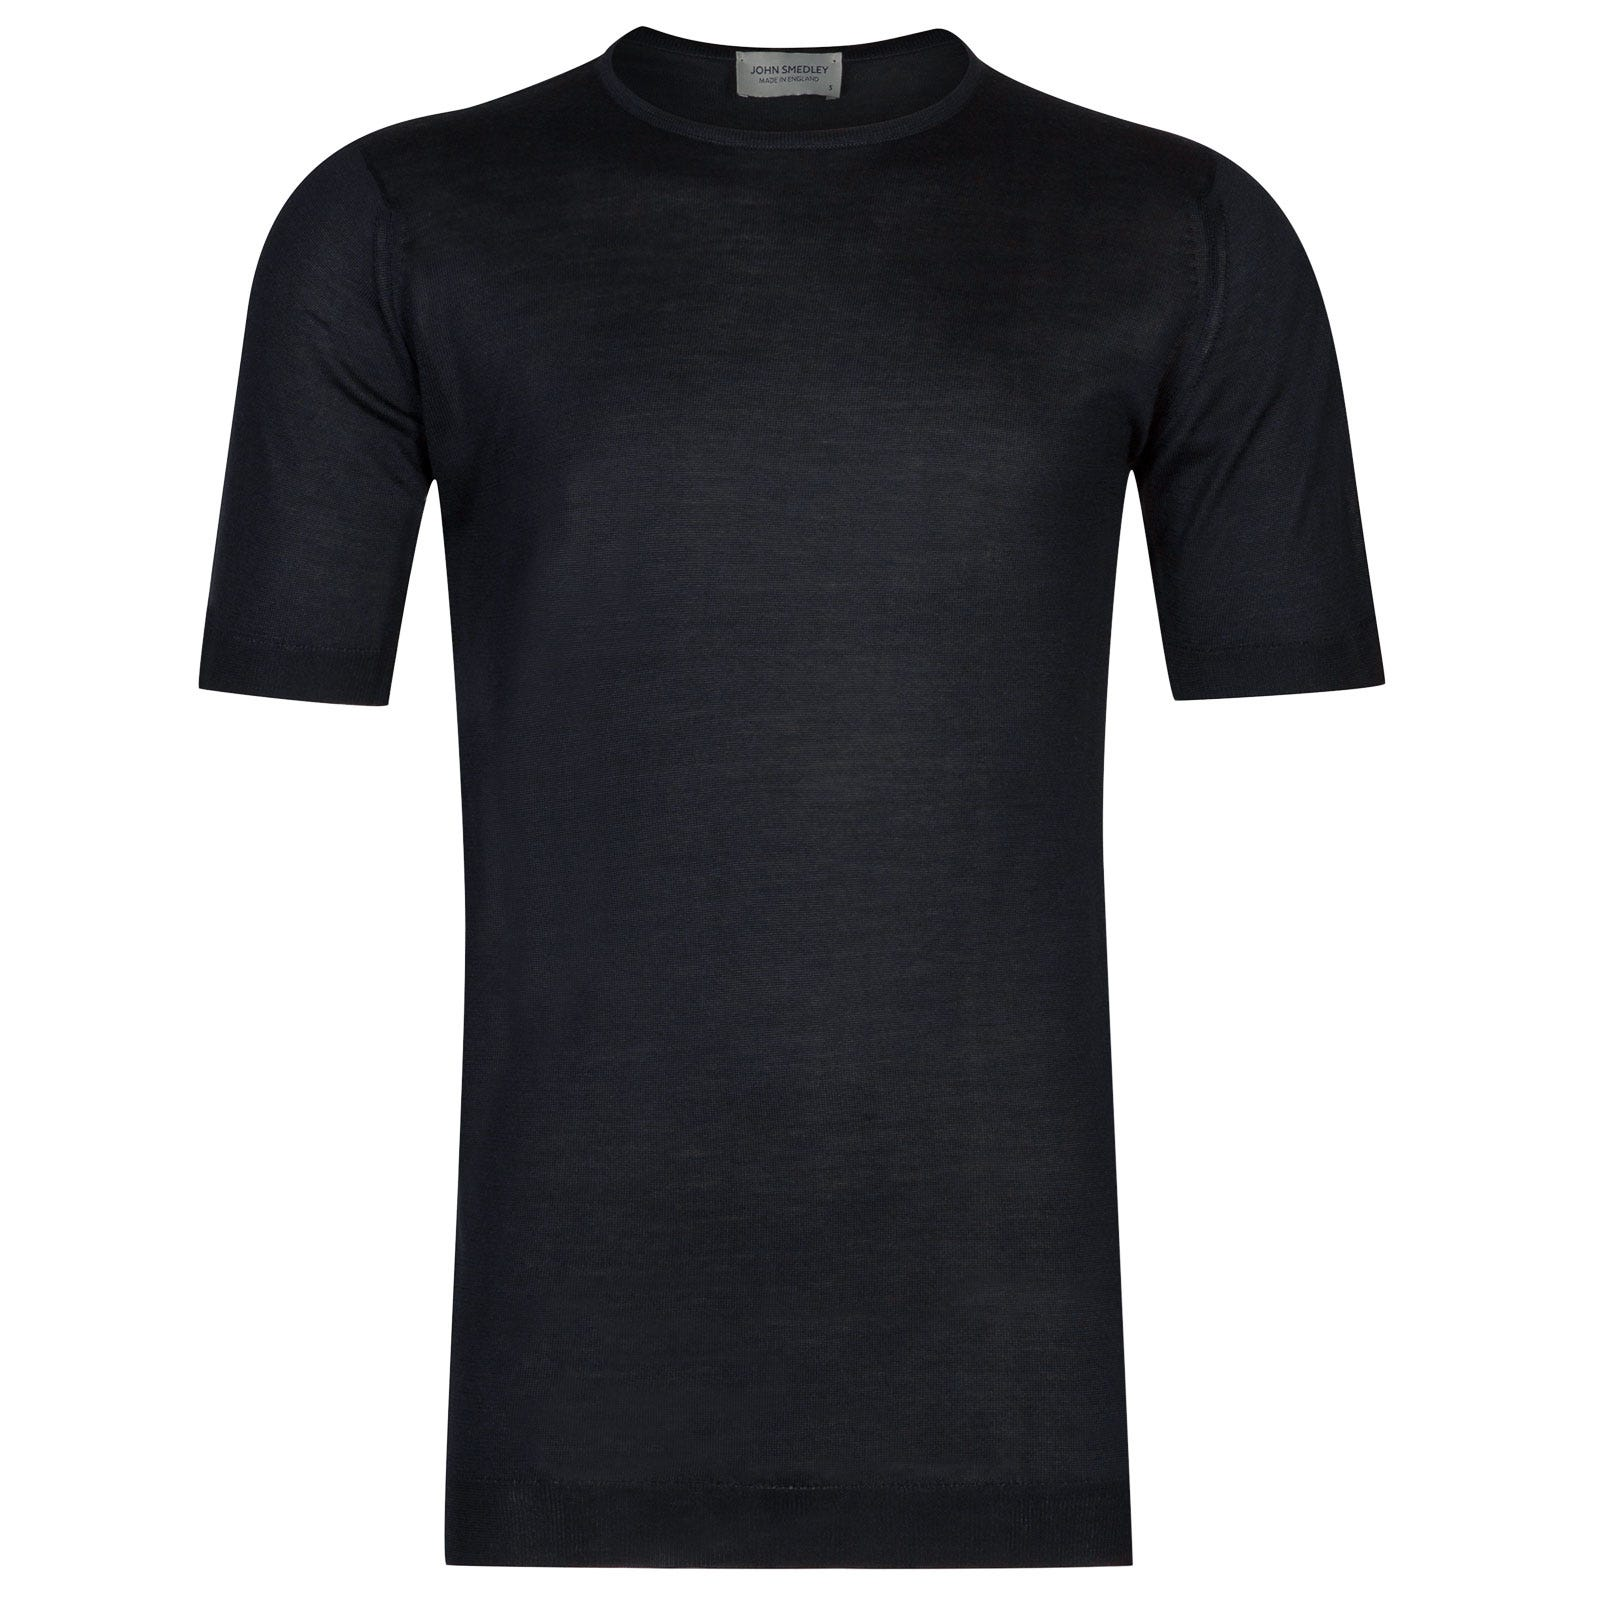 John Smedley stowe Pure Silk T-Shirt in Midnight-L